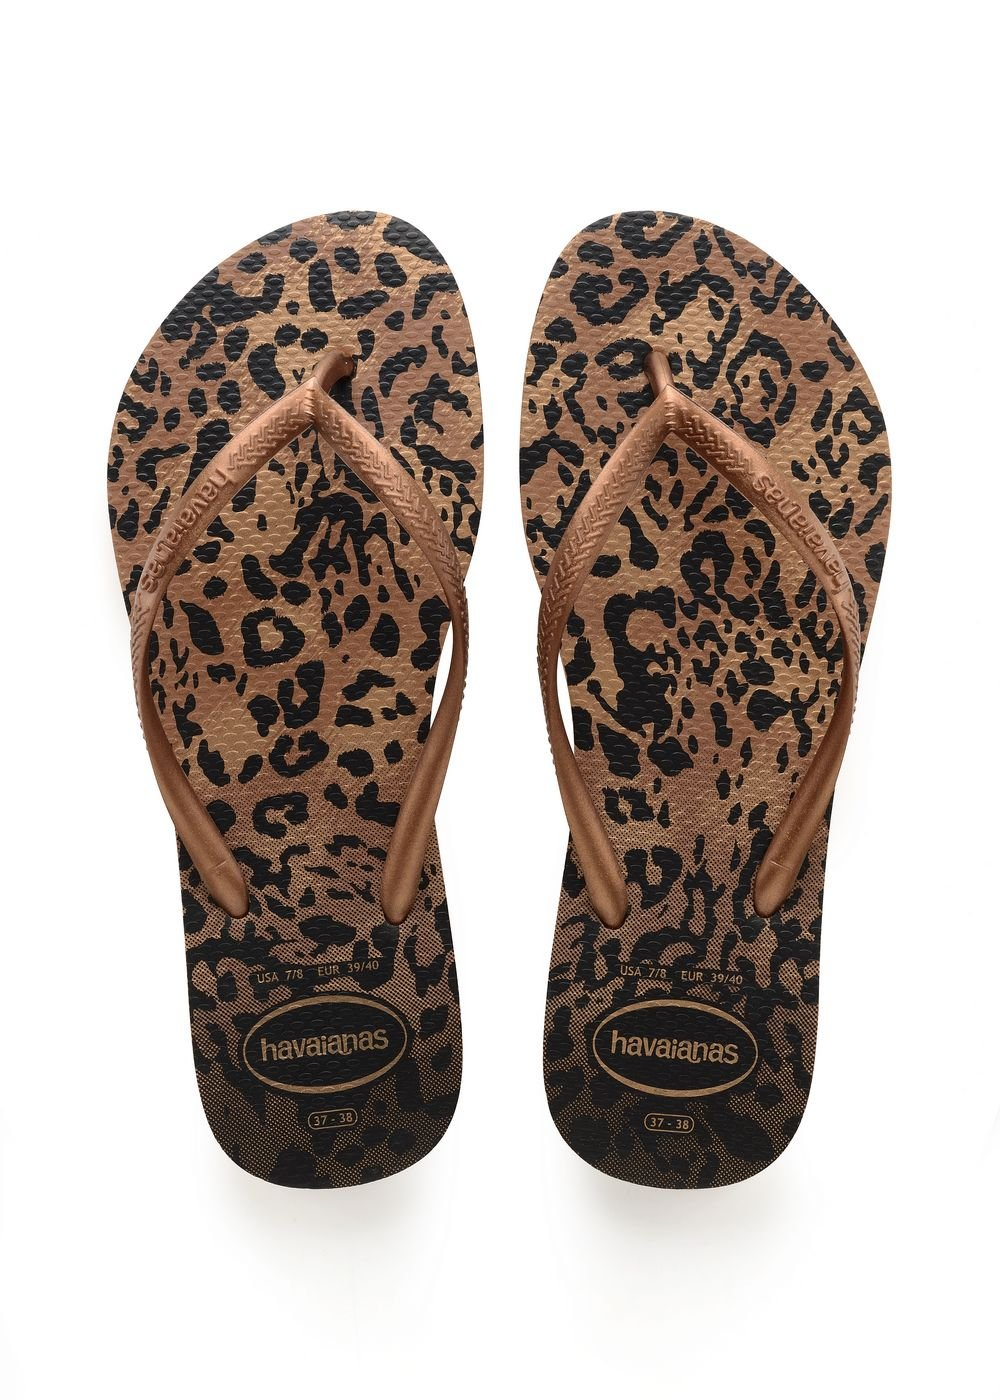 Havaianas Femme Tongs Femme Slim Animals 19570 Tongs Rouge (Rust) 042fdf0 - latesttechnology.space